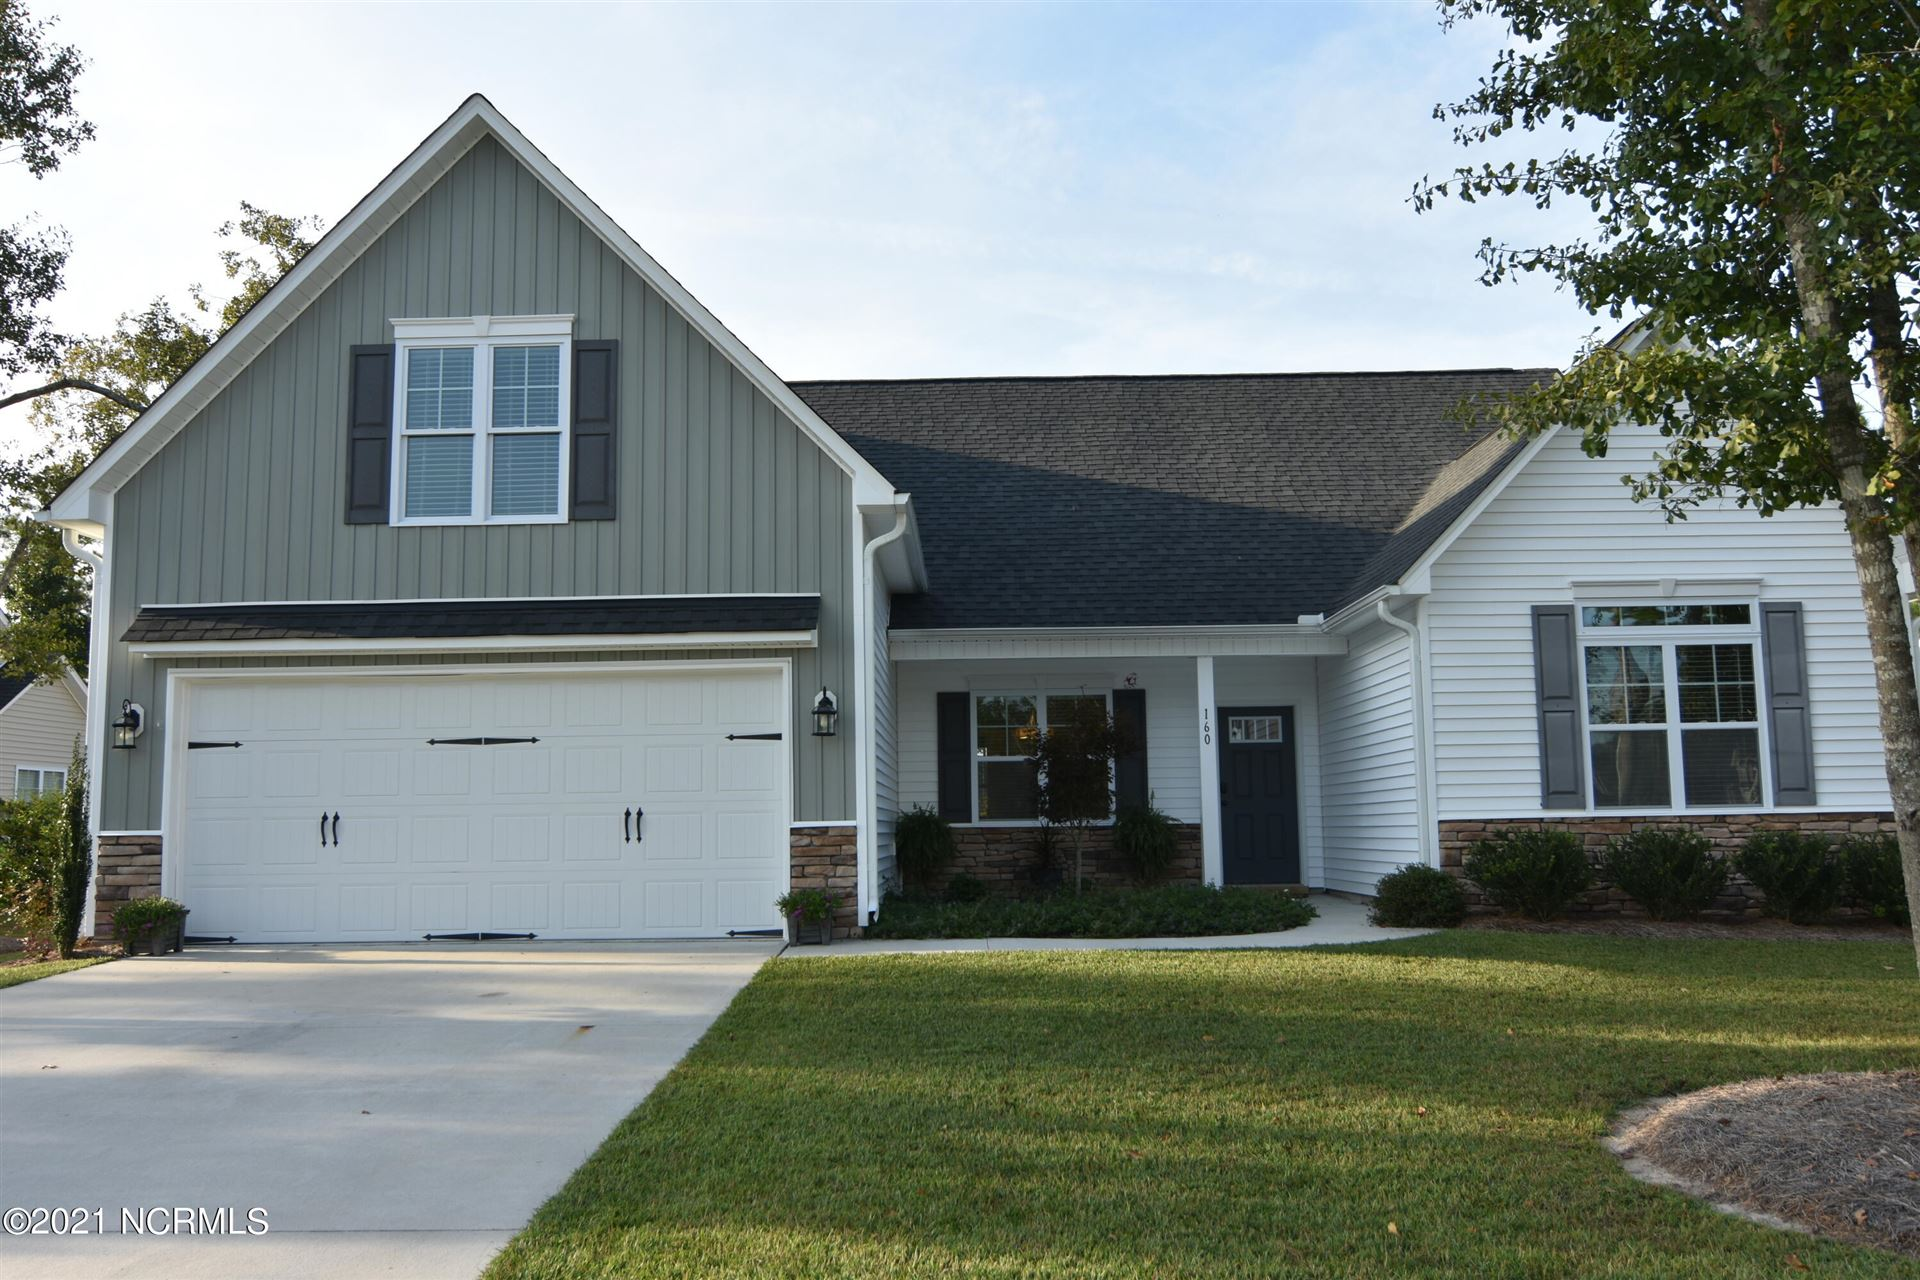 Photo of 160 Bronze Drive, Rocky Point, NC 28457 (MLS # 100295173)